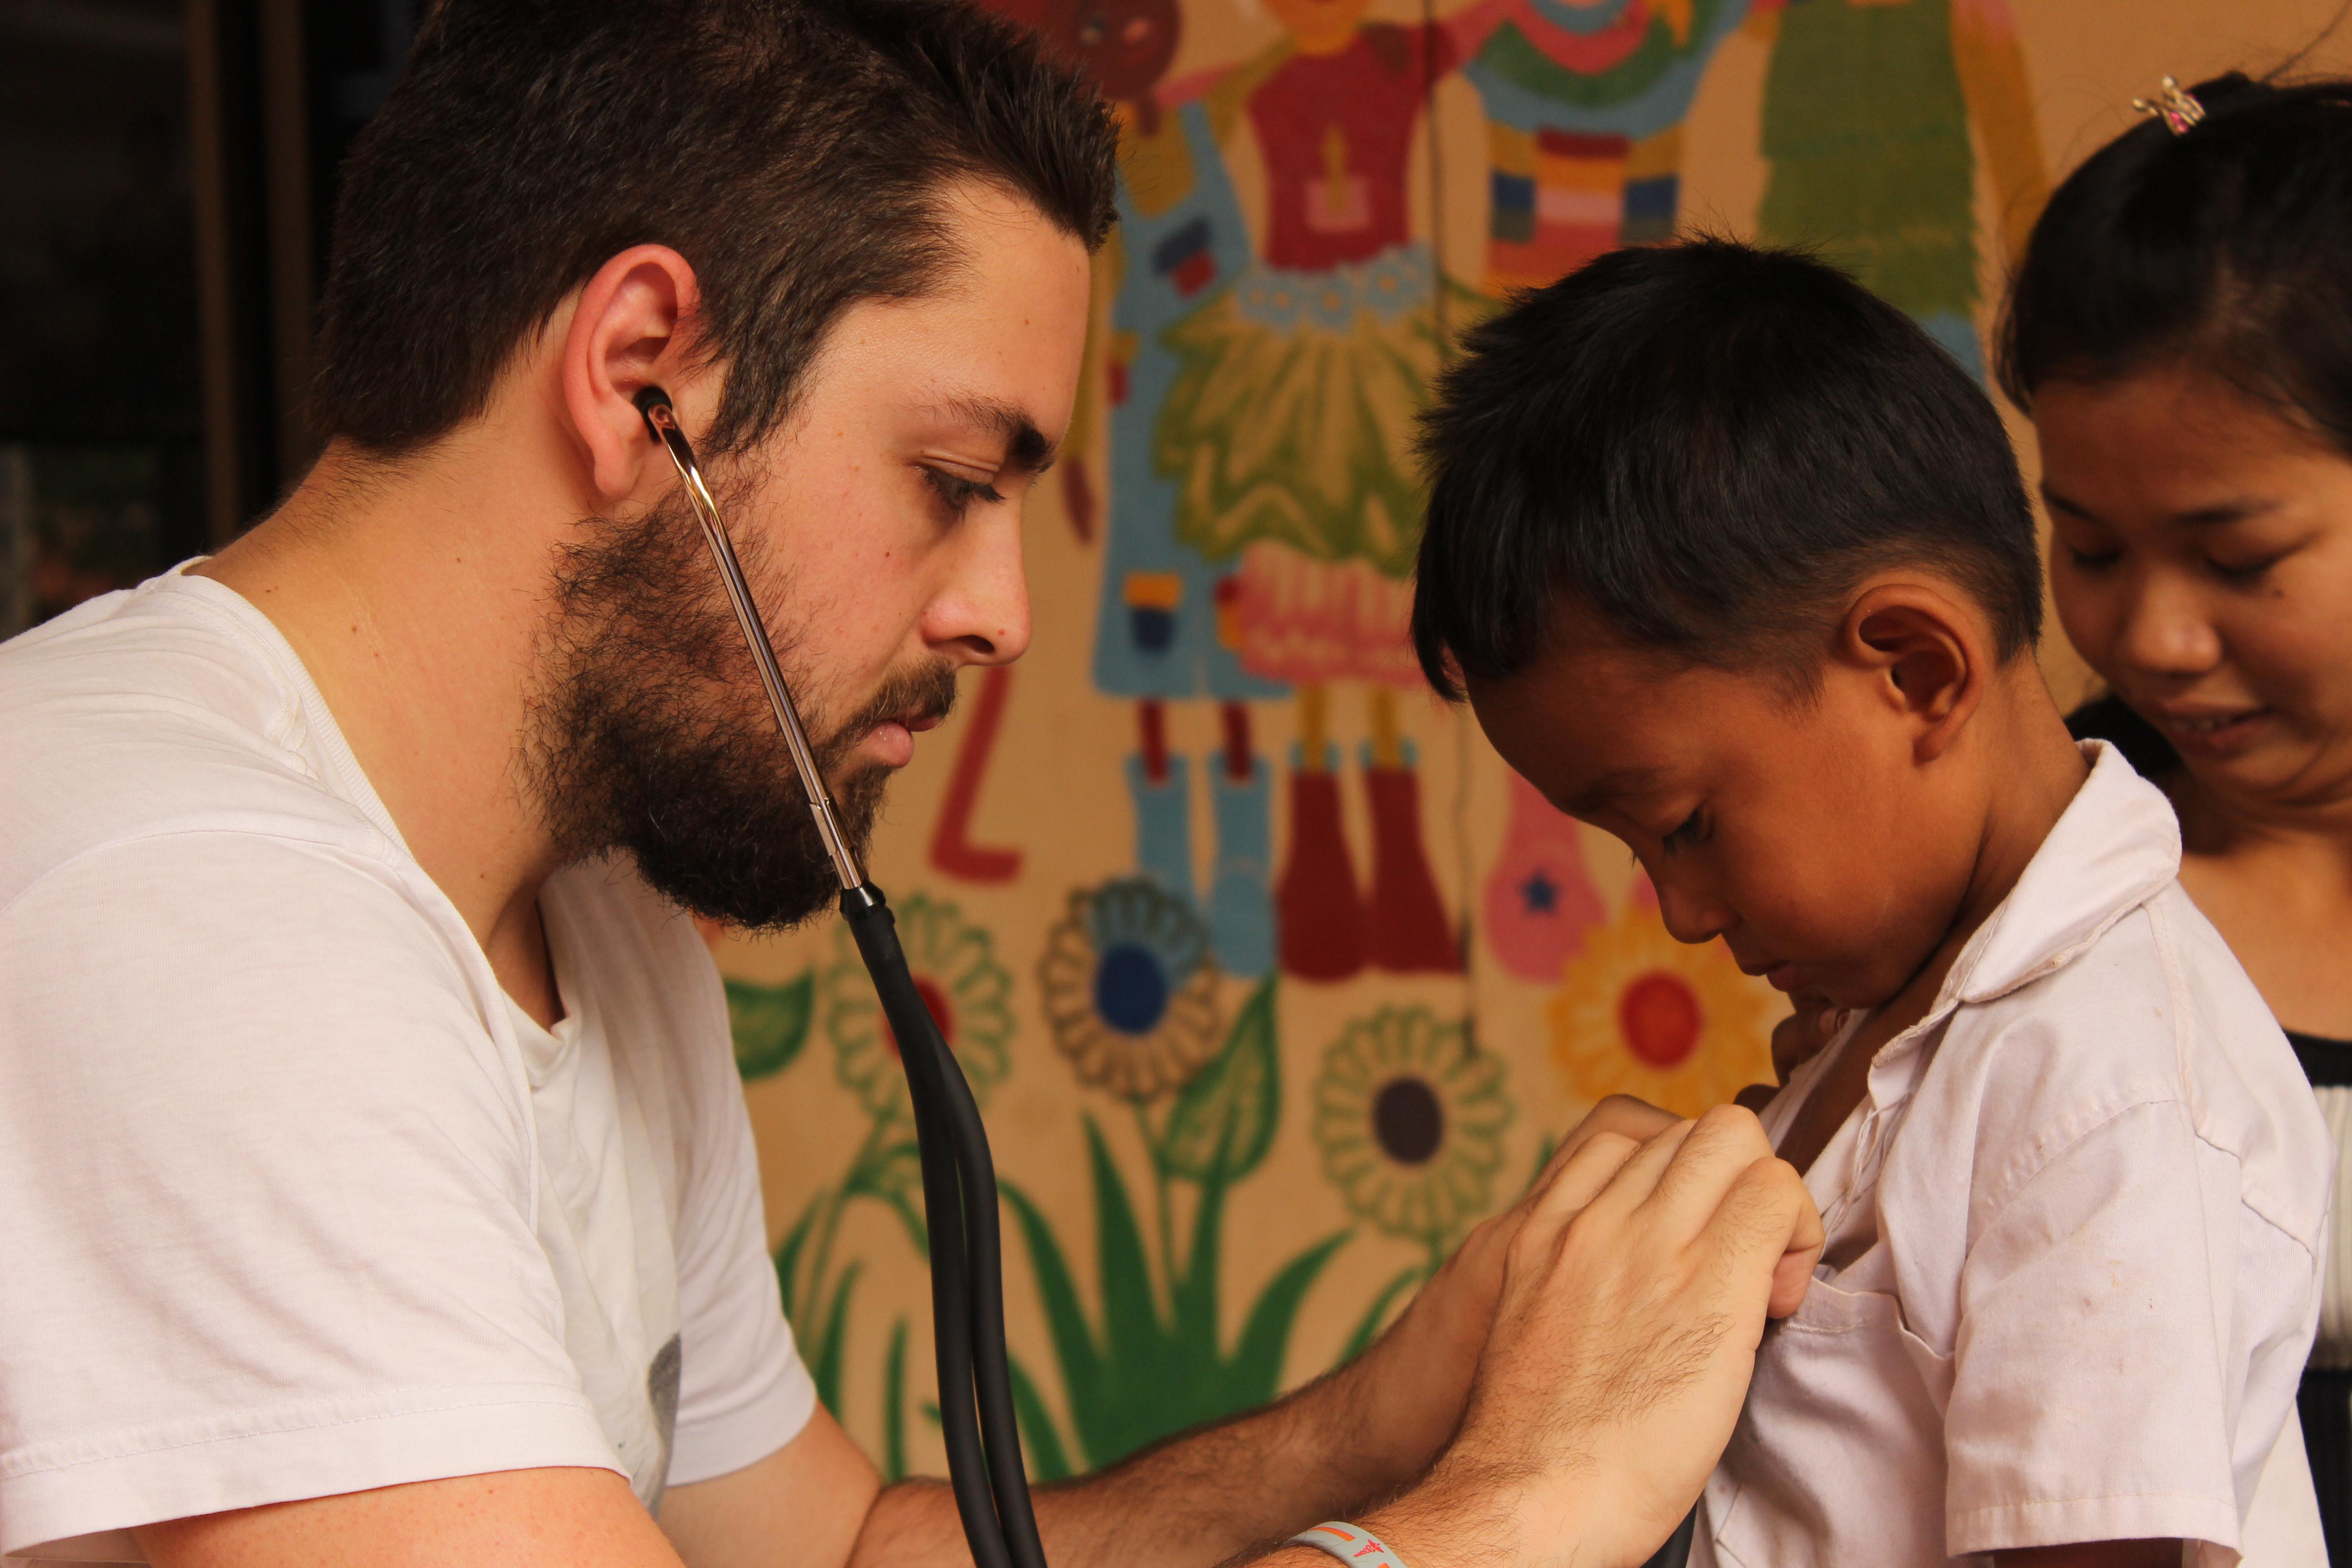 Cambodian child is treated by a male medical intern during a local outreach programme.